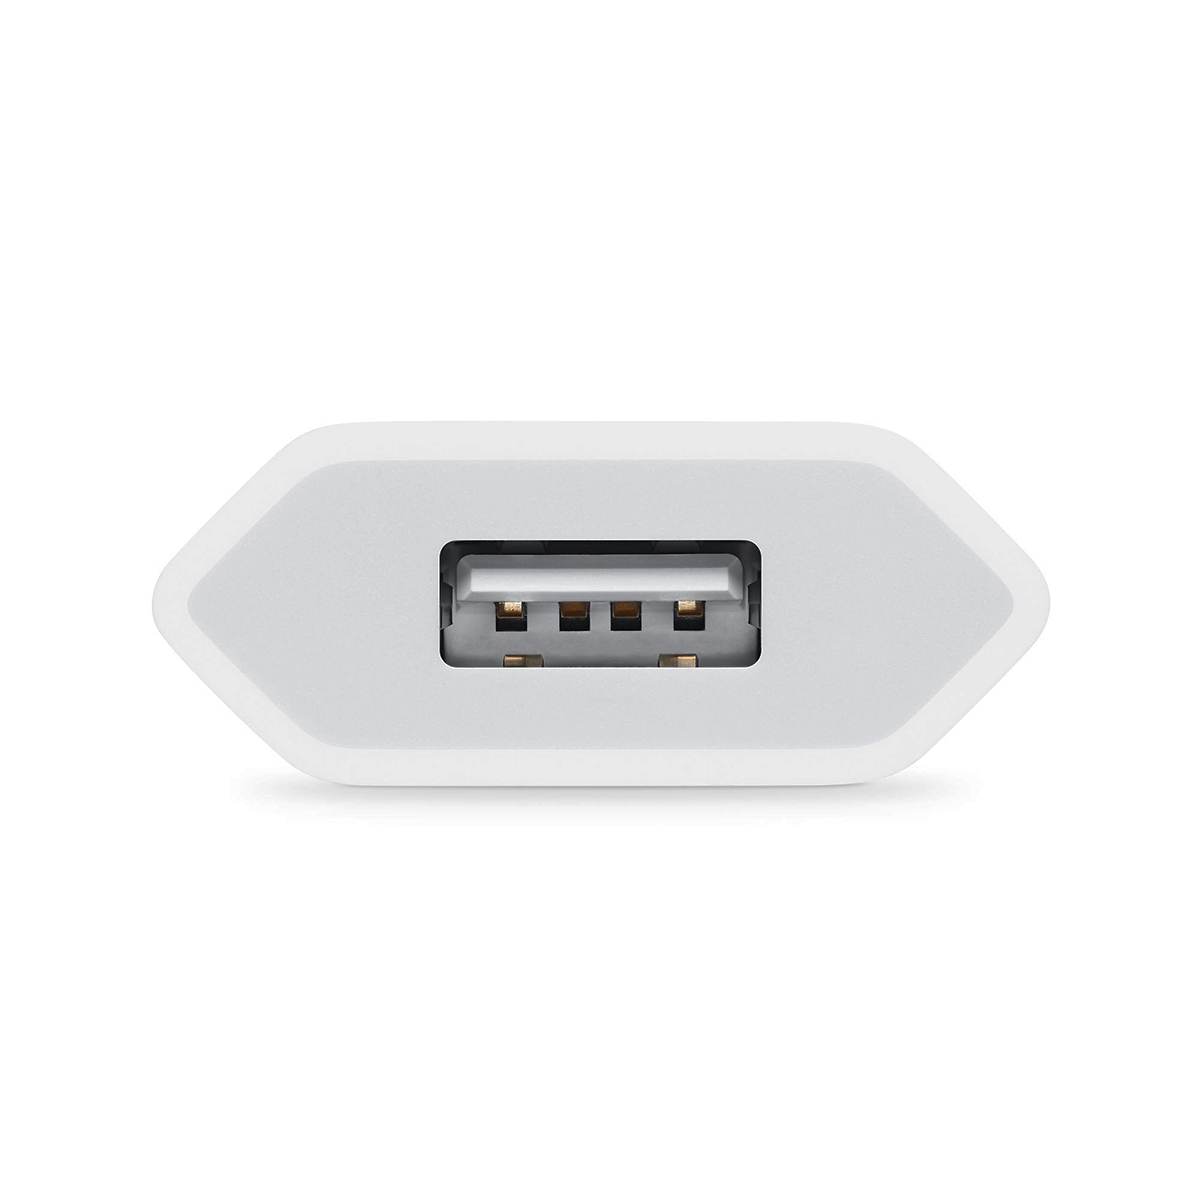 Carregador Apple USB MF032BZ/A 5W Branco - Carregador Apple USB MF032BZ/A  5W Branco - Bemol APPLE | Bemol